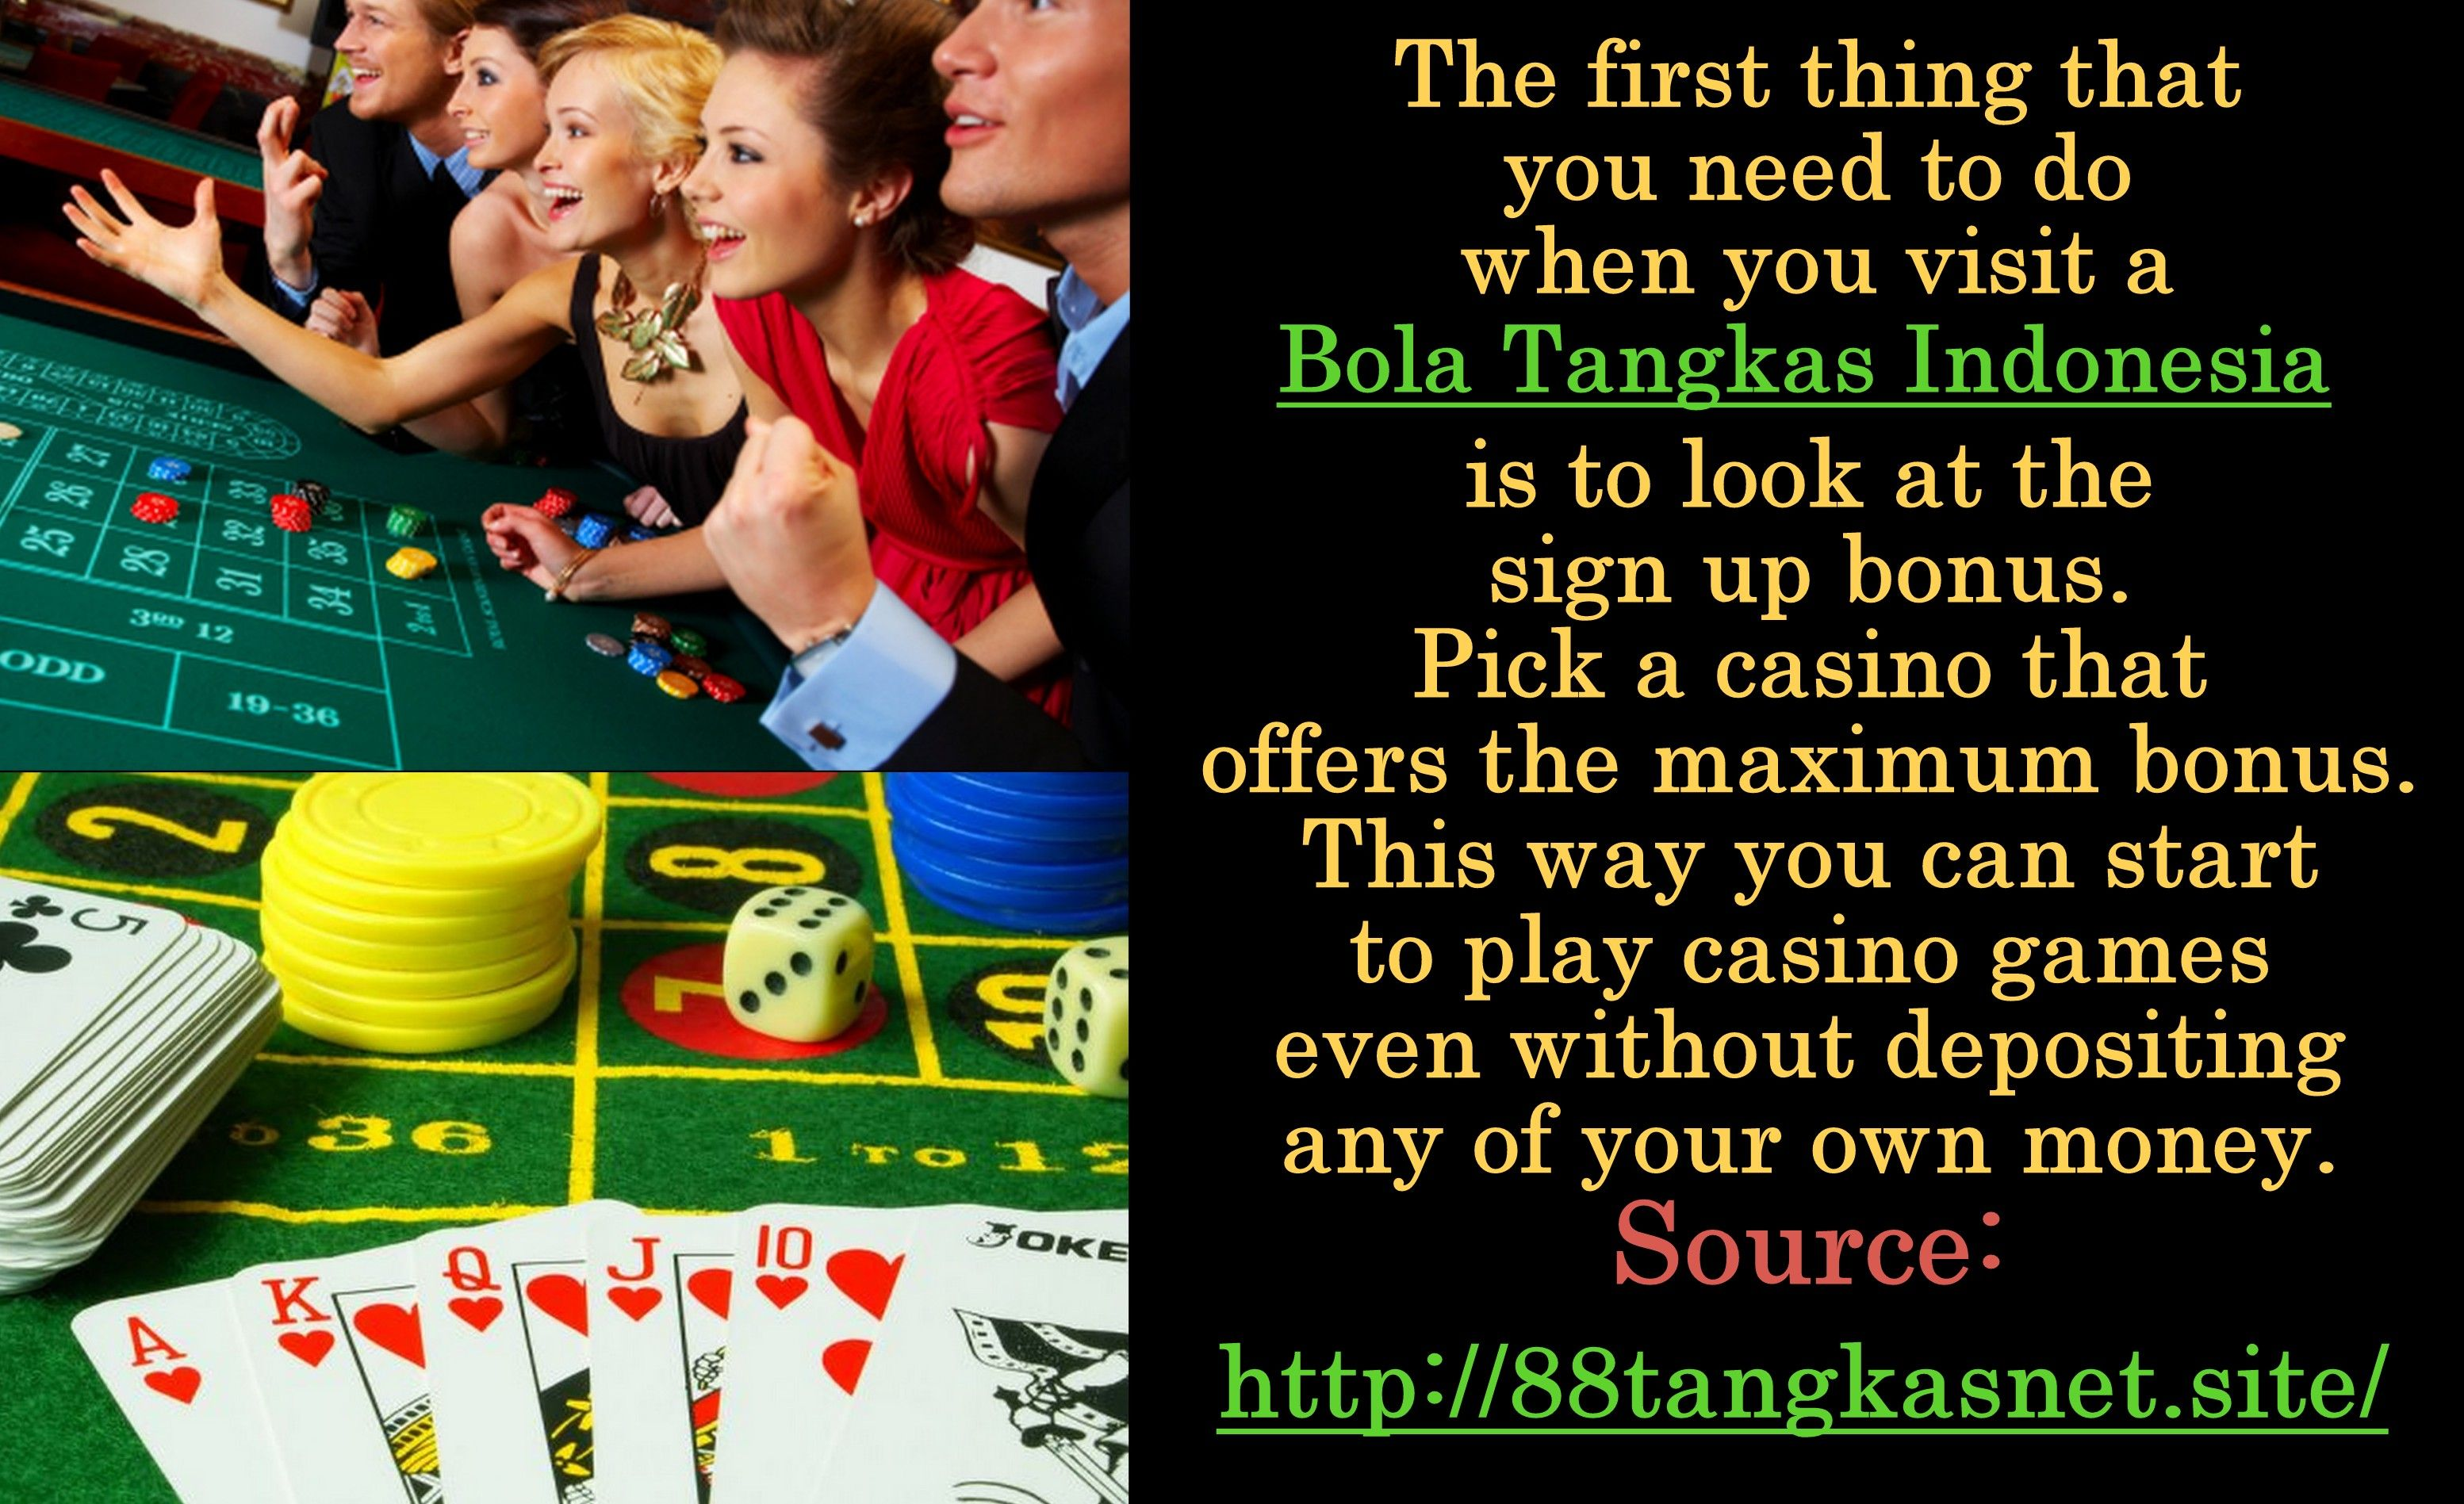 When people play online casinos, they get peace of mind and relaxation in an environment that they are familiar with. Instead of listening to the noisy casino where they can be easily distracted, online casinos help them to play in an atmosphere that they choose. For More Information about agen bola tangkas, please check http://88tangkasnet.site/